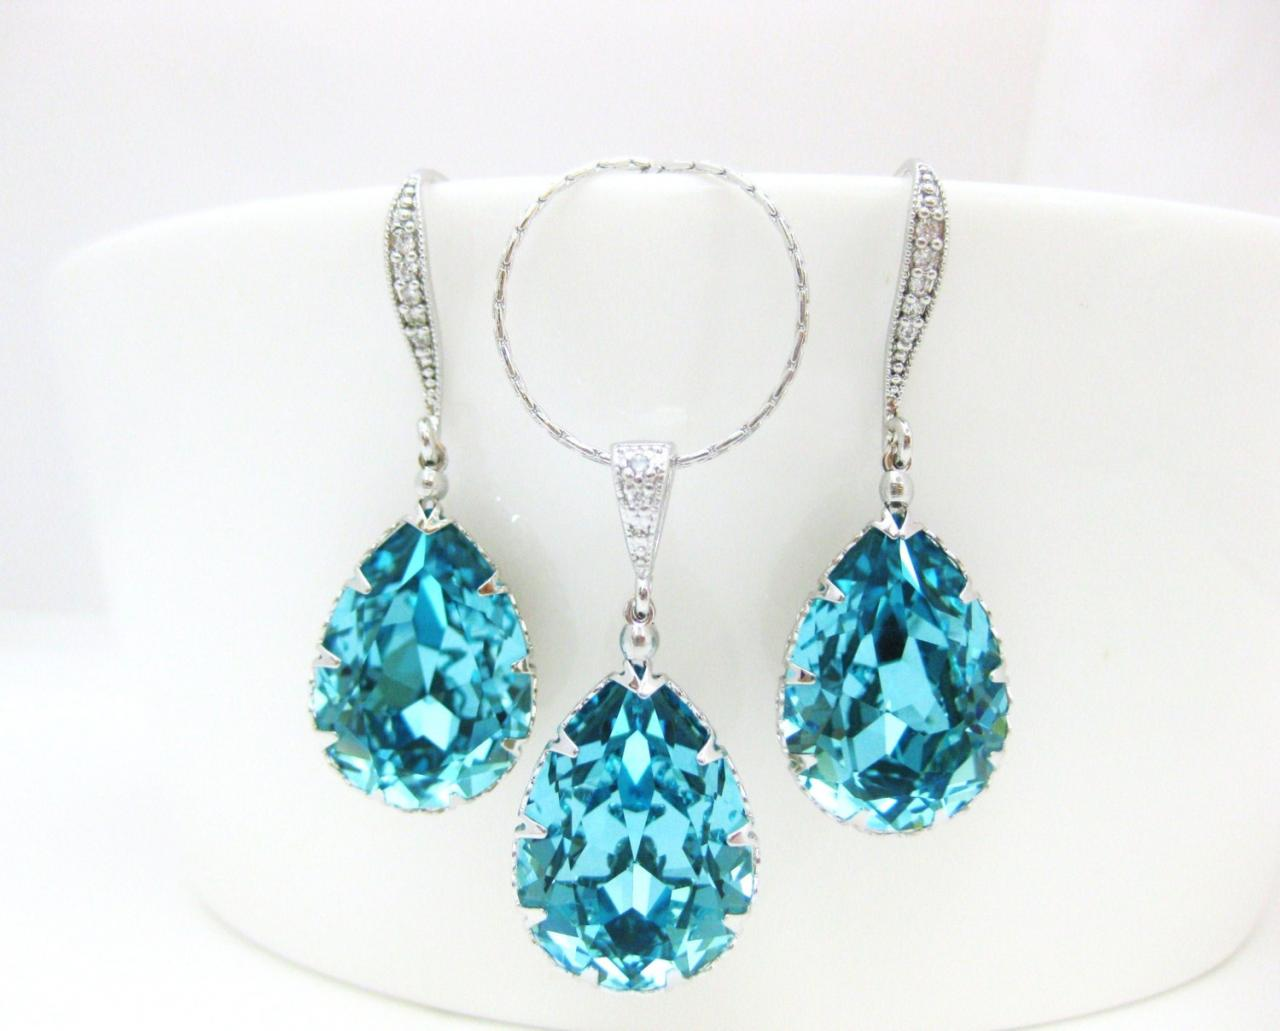 Teal Blue Earrings & Necklace Gift Set Swarovski Crystal Light Turquoise Wedding Necklace Bridal drop Earrings Something Blue (NE041)